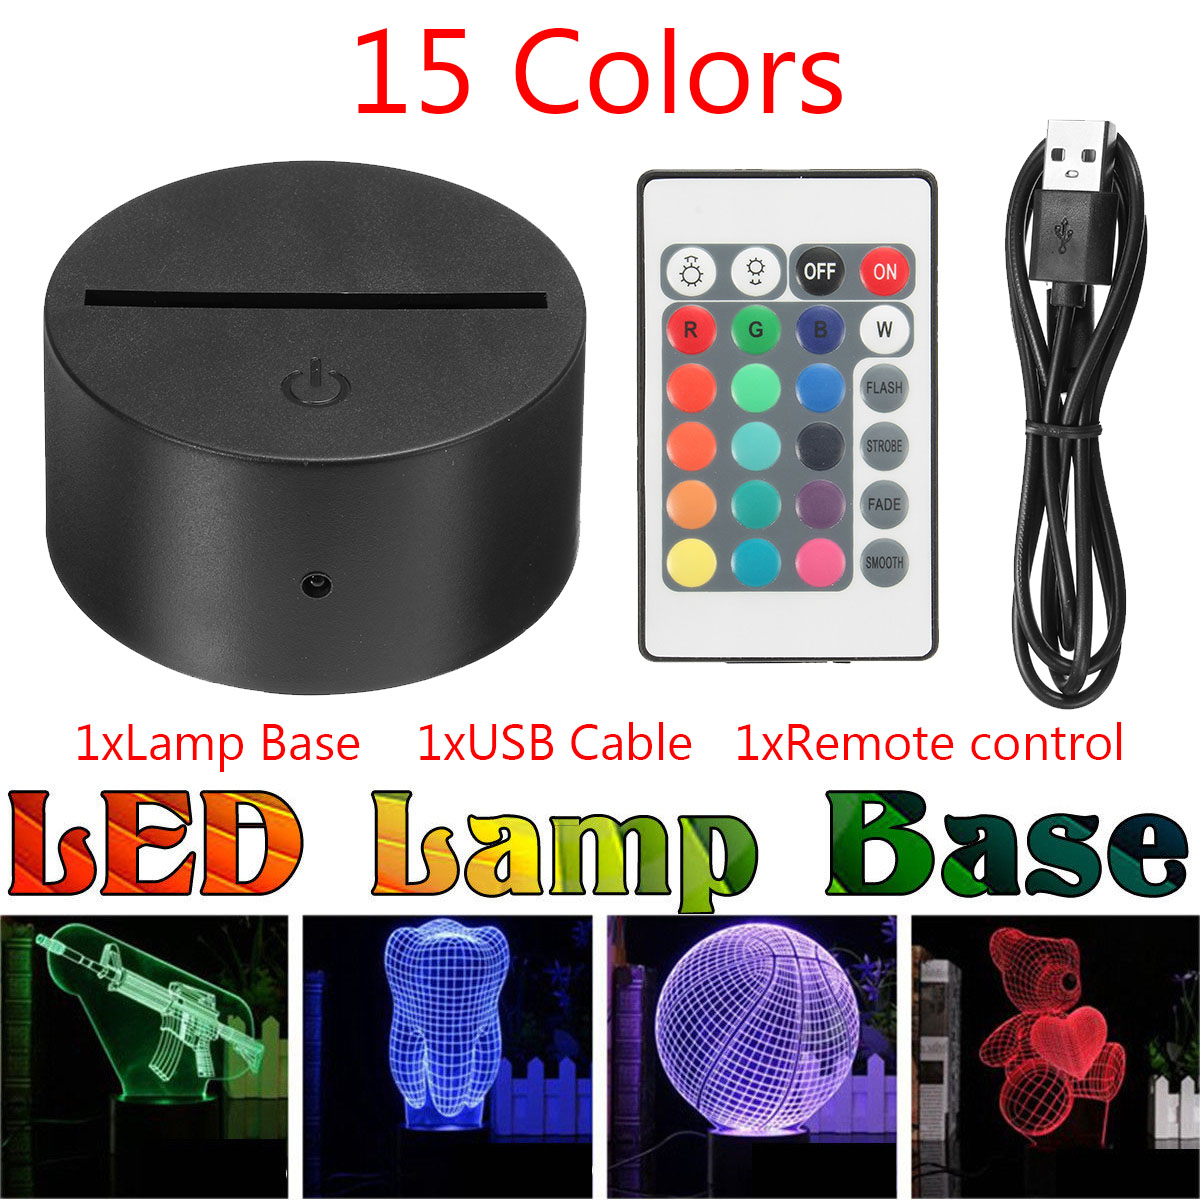 LED ABS Acrylic Black 3D Lamp Night Light Base USB Cable Remote Control CN